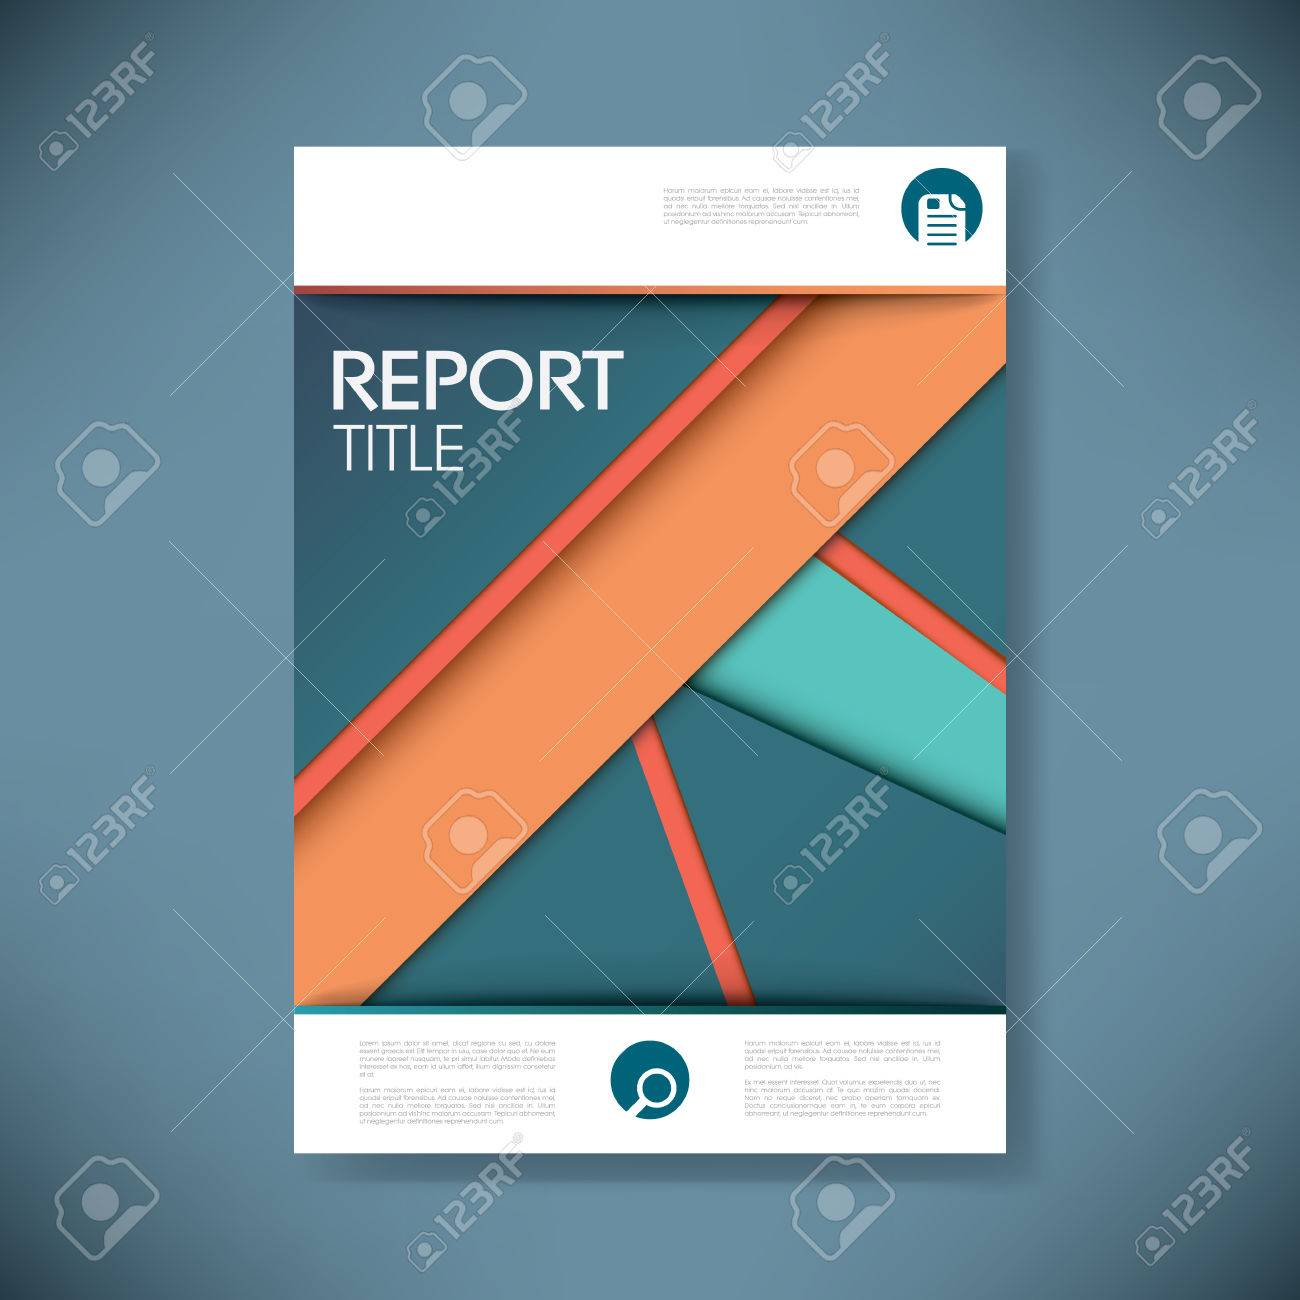 Report Cover Template For Business Presentation Or Brochure ...